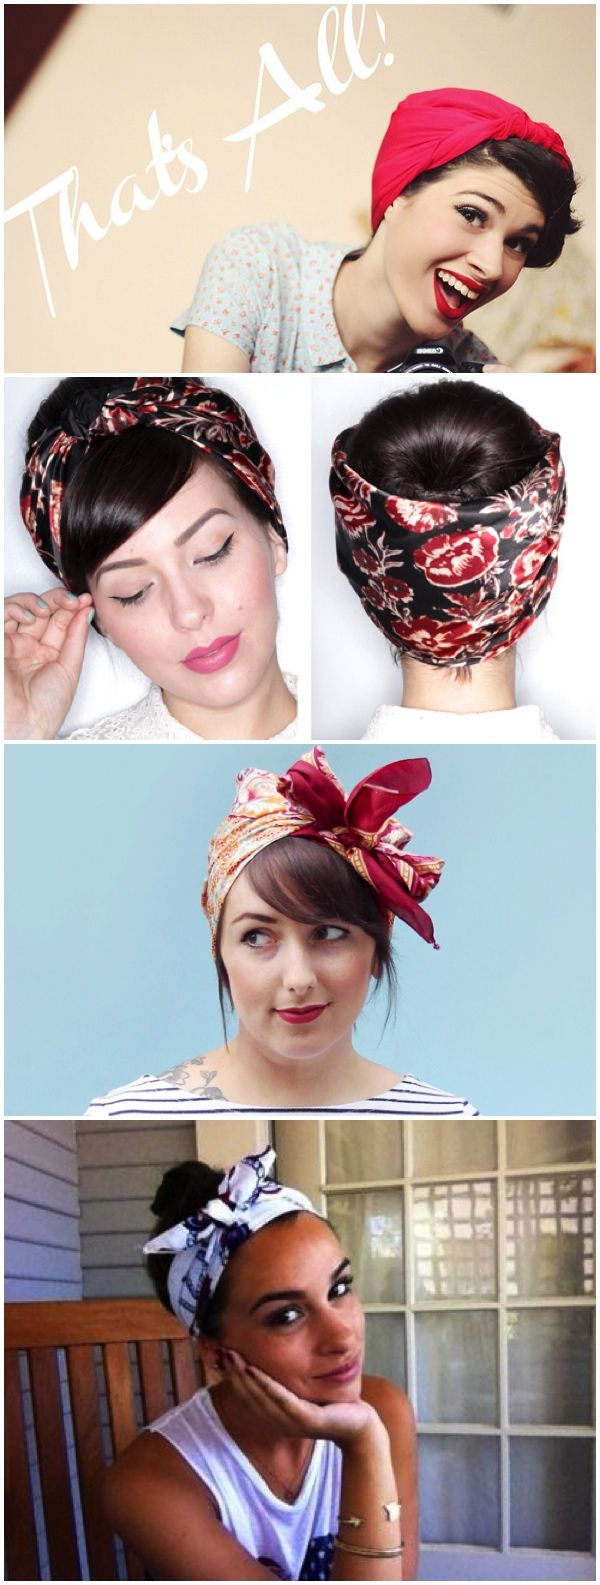 Este verano, ponte pañuelo en la cabeza/ This summer, wrap the headscarf up